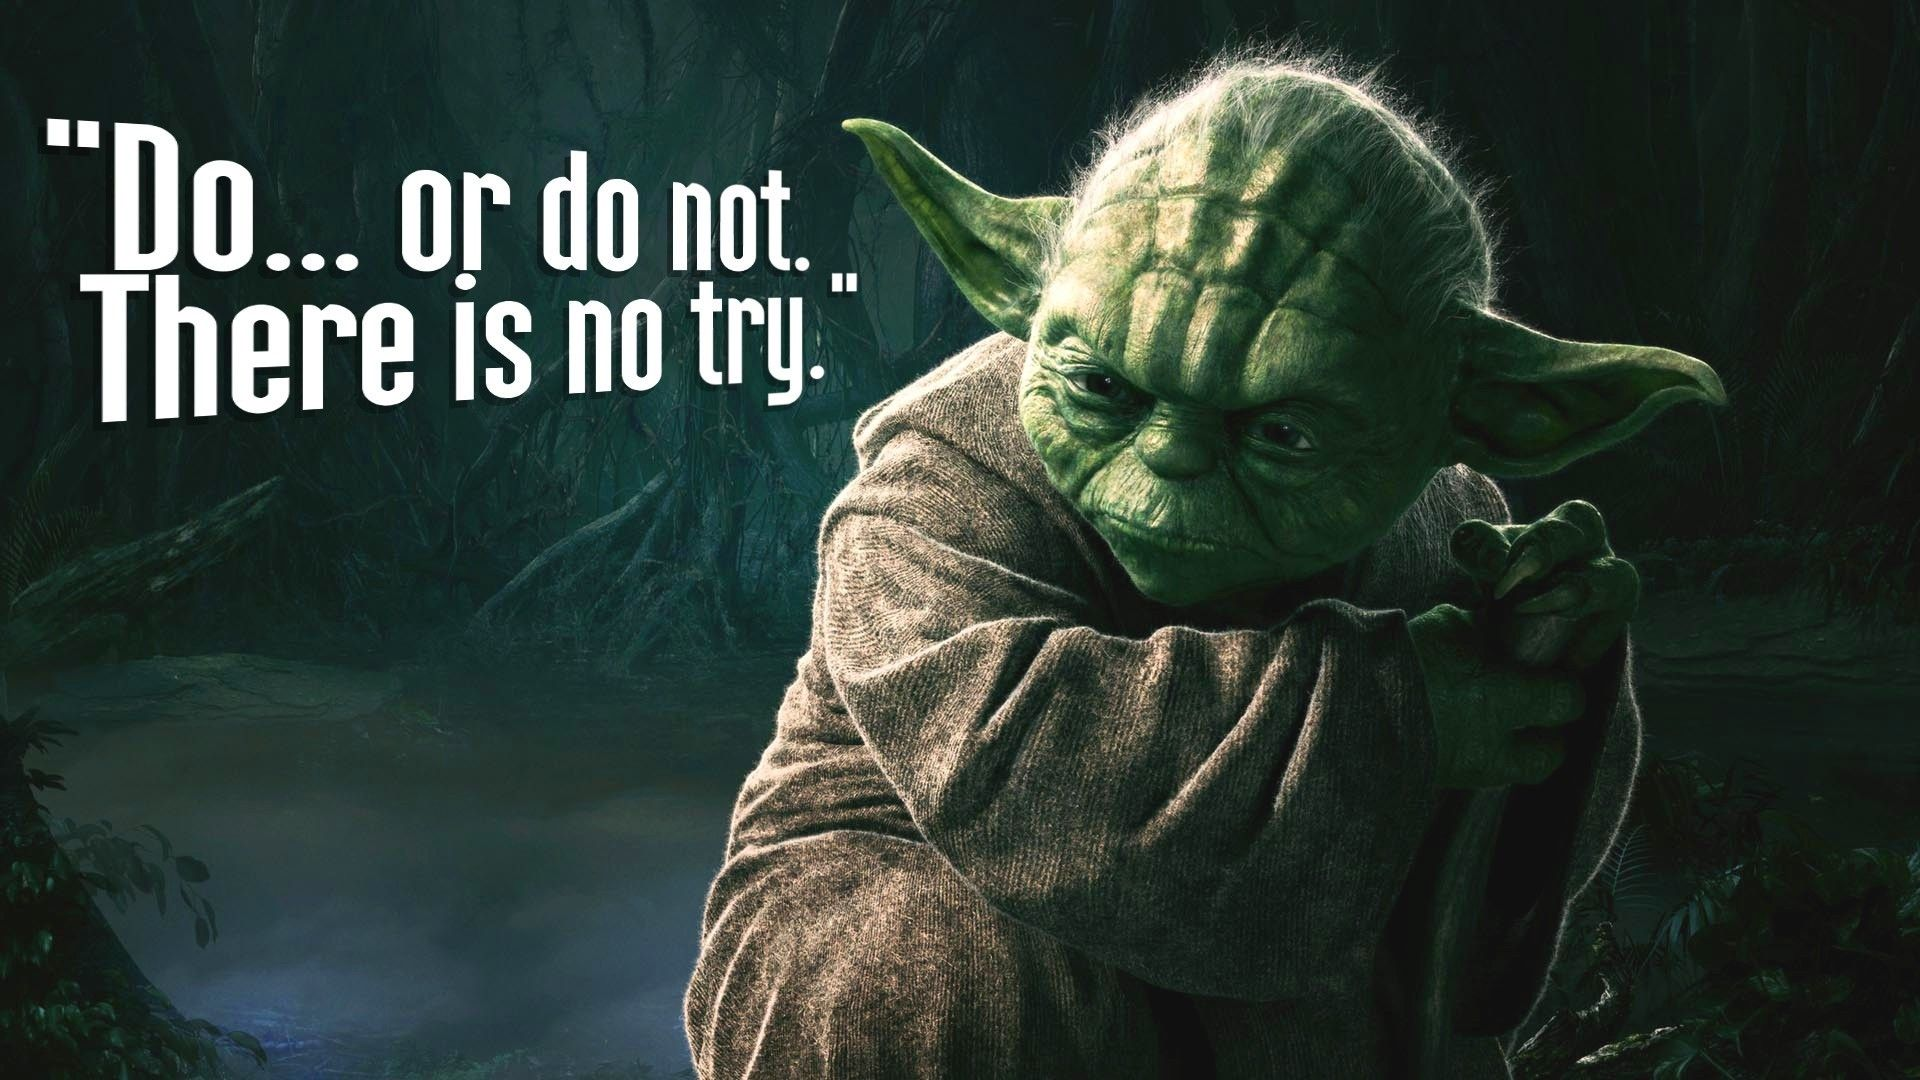 Iphone wallpaper yoda - Yoda Do Or Do Not Hd Wallpaper